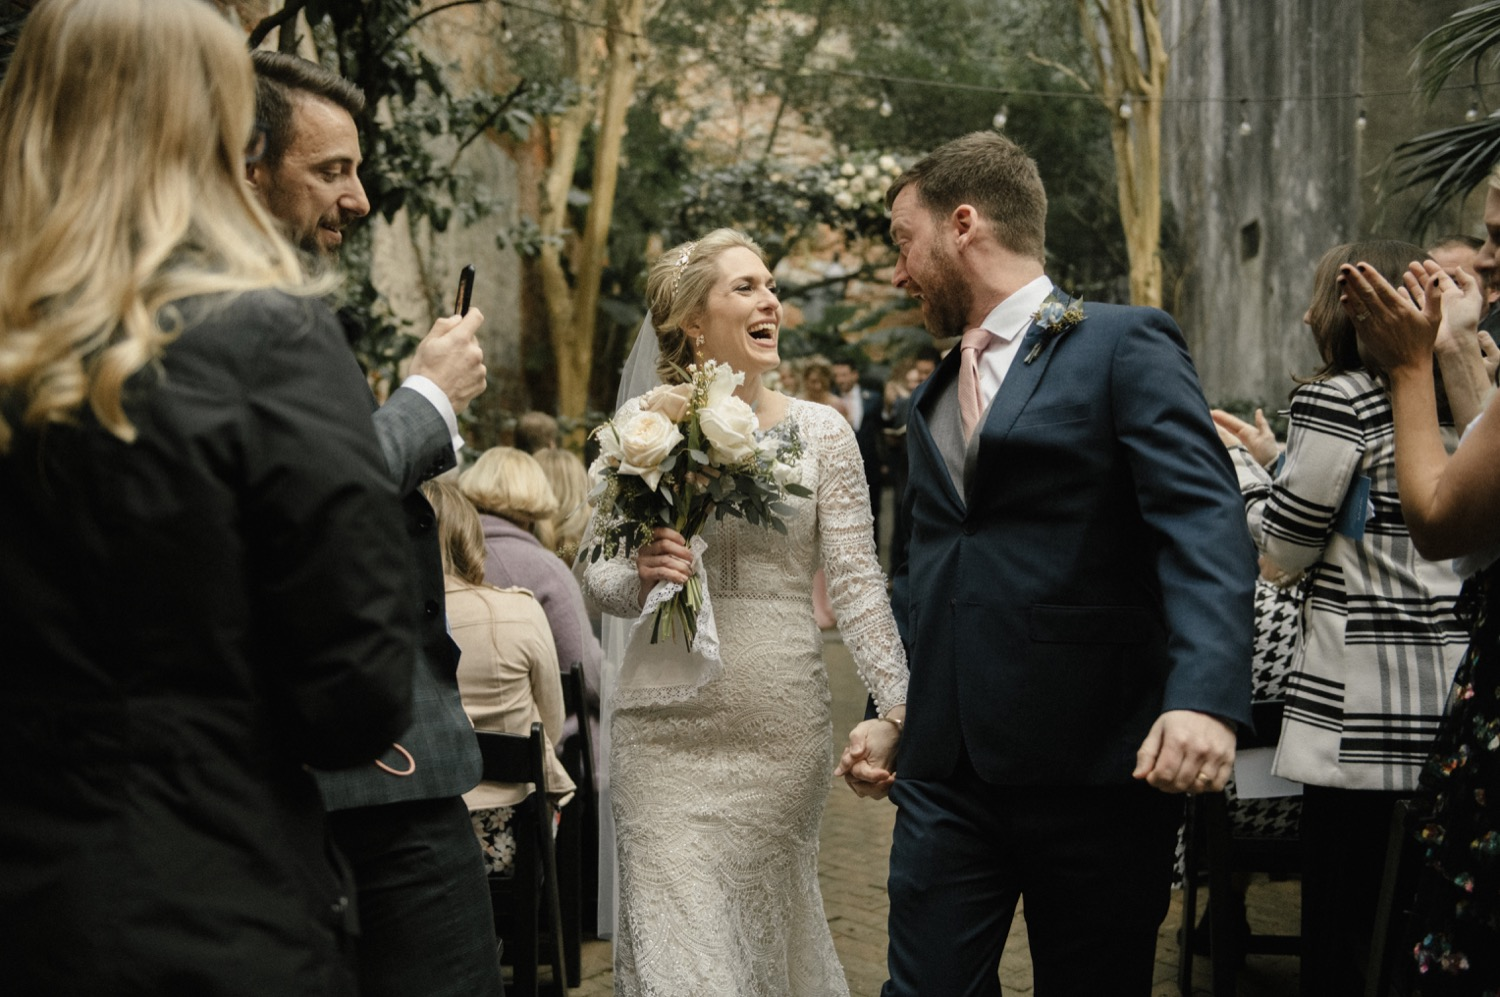 Kirstin and Drew walk down the isle as an officially married couple at the Pharmacy Museum in New Orleans.